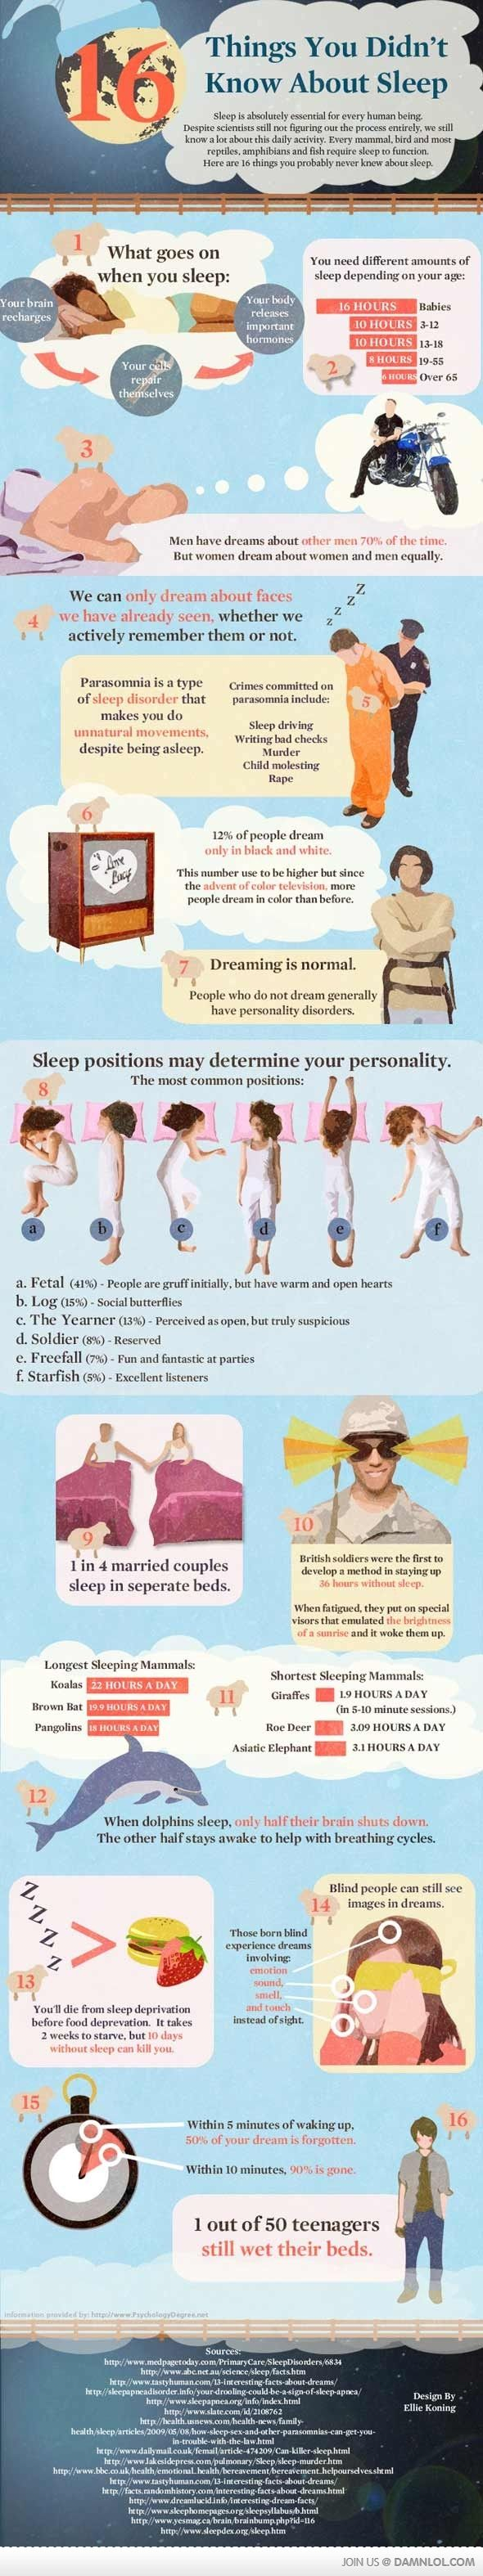 16 Things You Didn't Know About SleepStuff, Random, Fun Facts, Sleep Facts, 16 Things, Interesting, Health, 16 Facts, Sleep Infographic